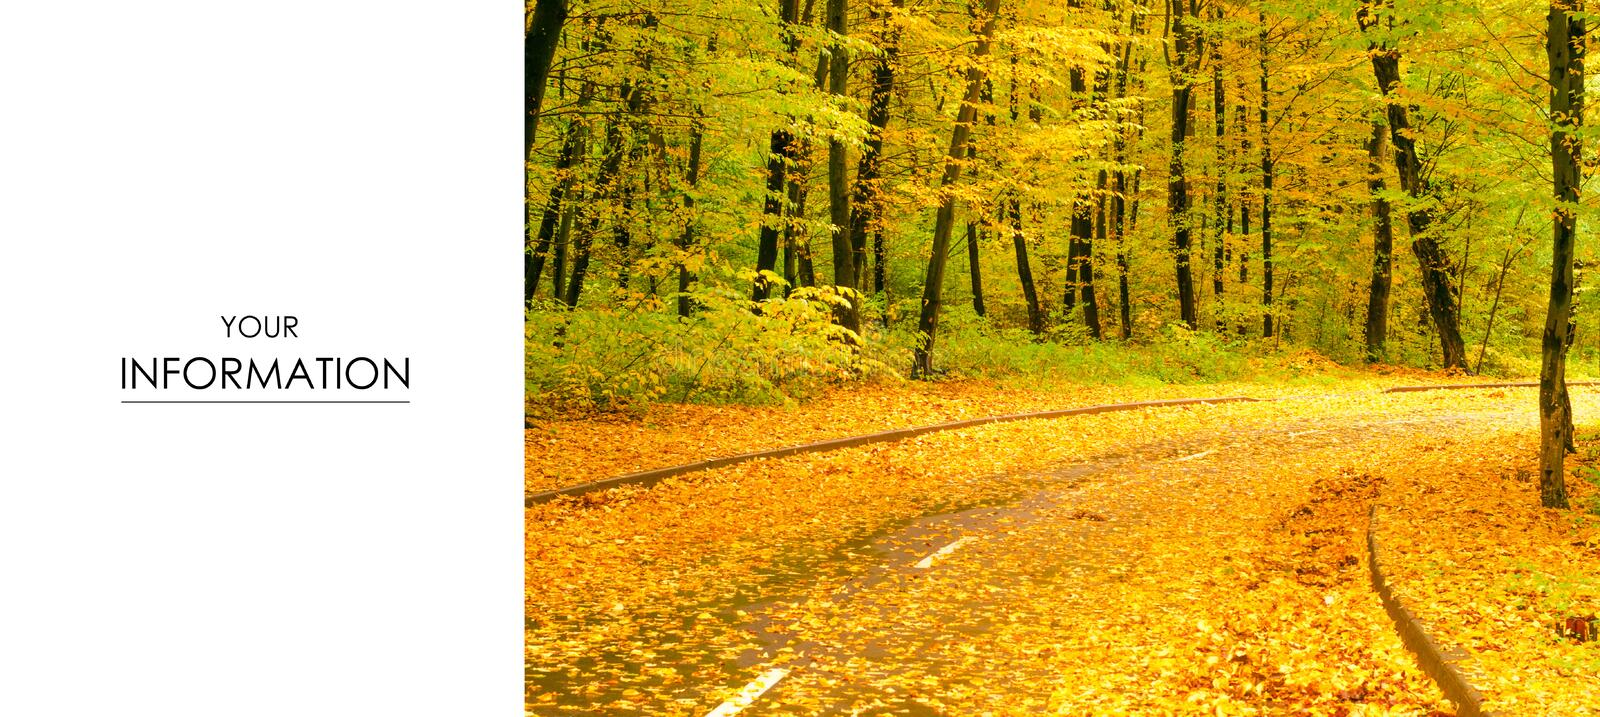 Autumn trees road landscape view of yellow red orange leaves royalty free stock photography